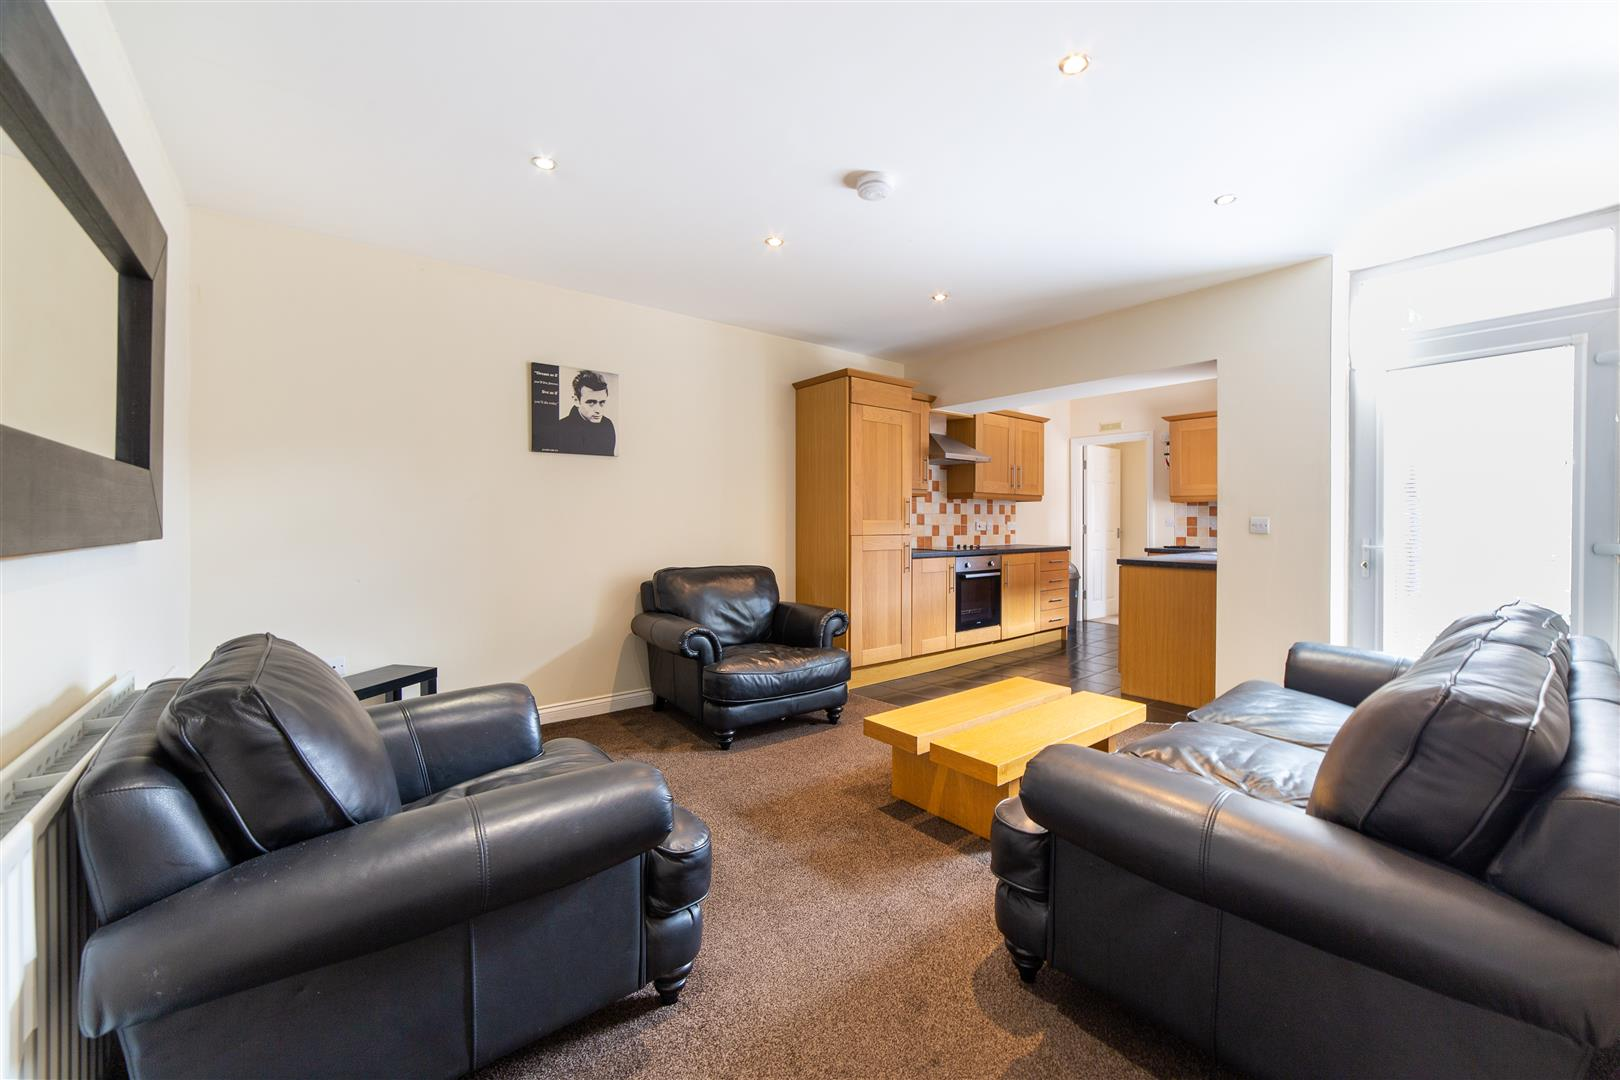 3 bed flat to rent in Myrtle Grove, Newcastle Upon Tyne, NE2